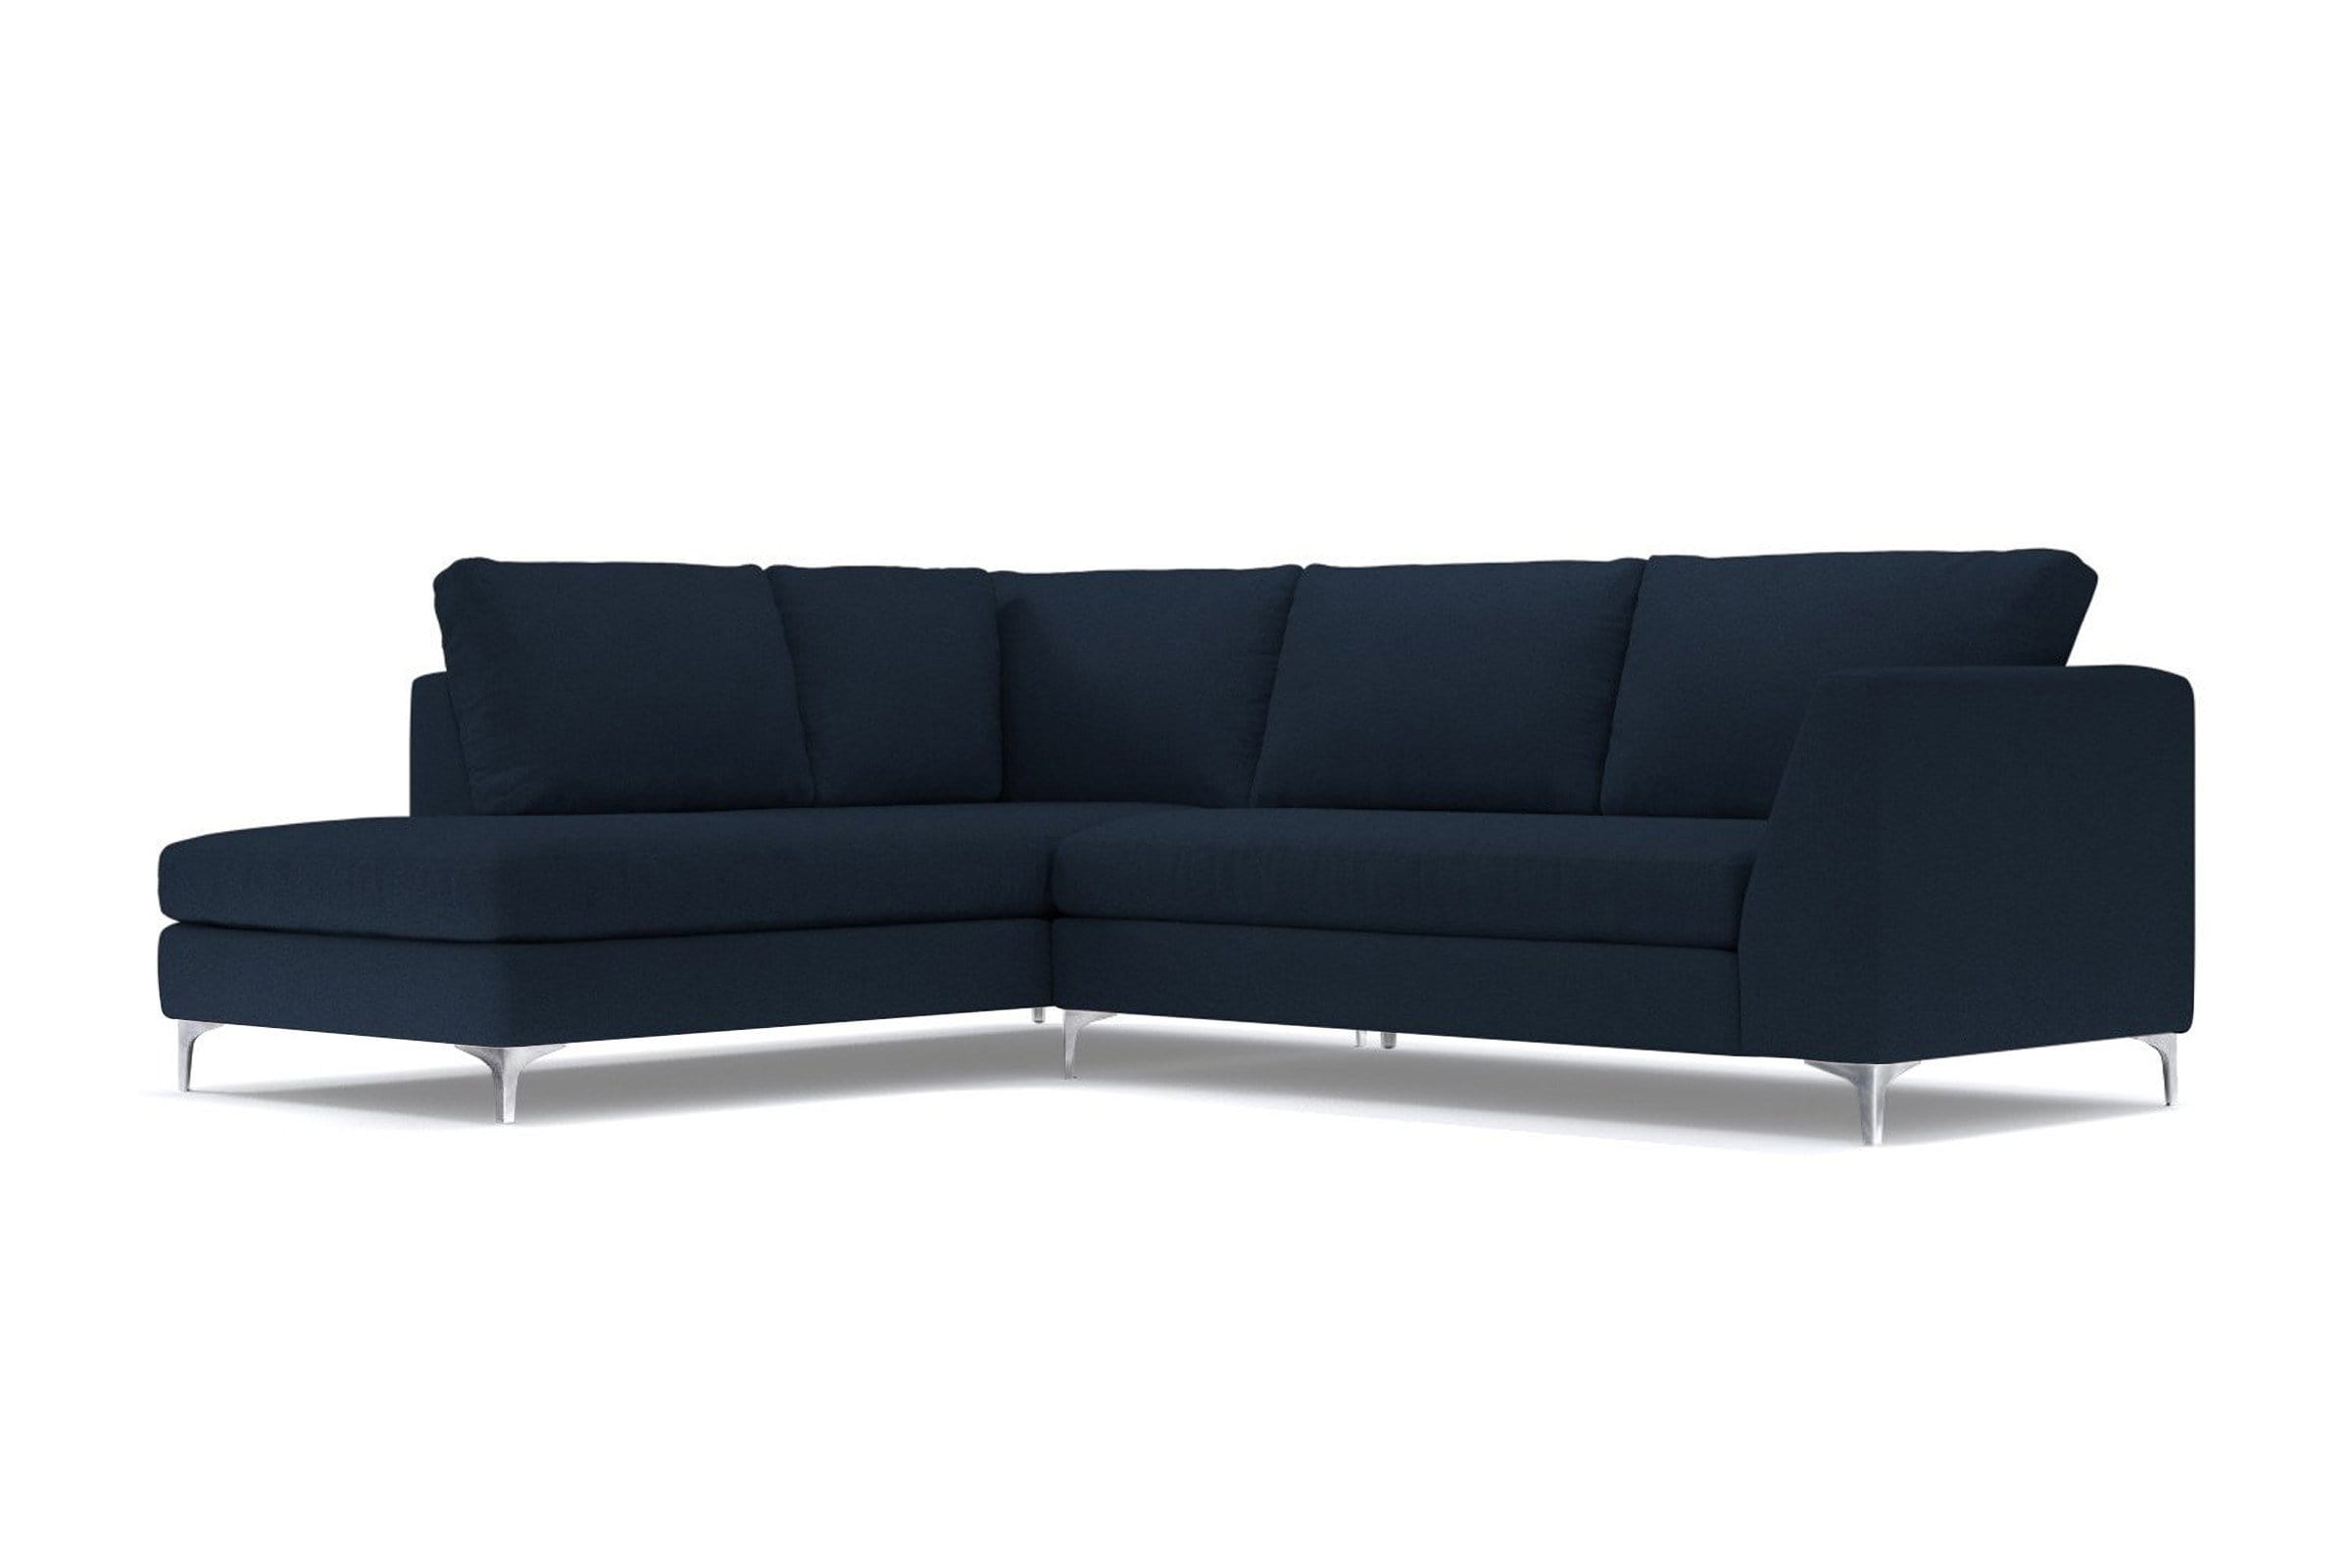 Mulholland 2pc Sectional Sofa - Dark Blue - Modern Sectional Sofa Made in USA - Sold by Apt2B